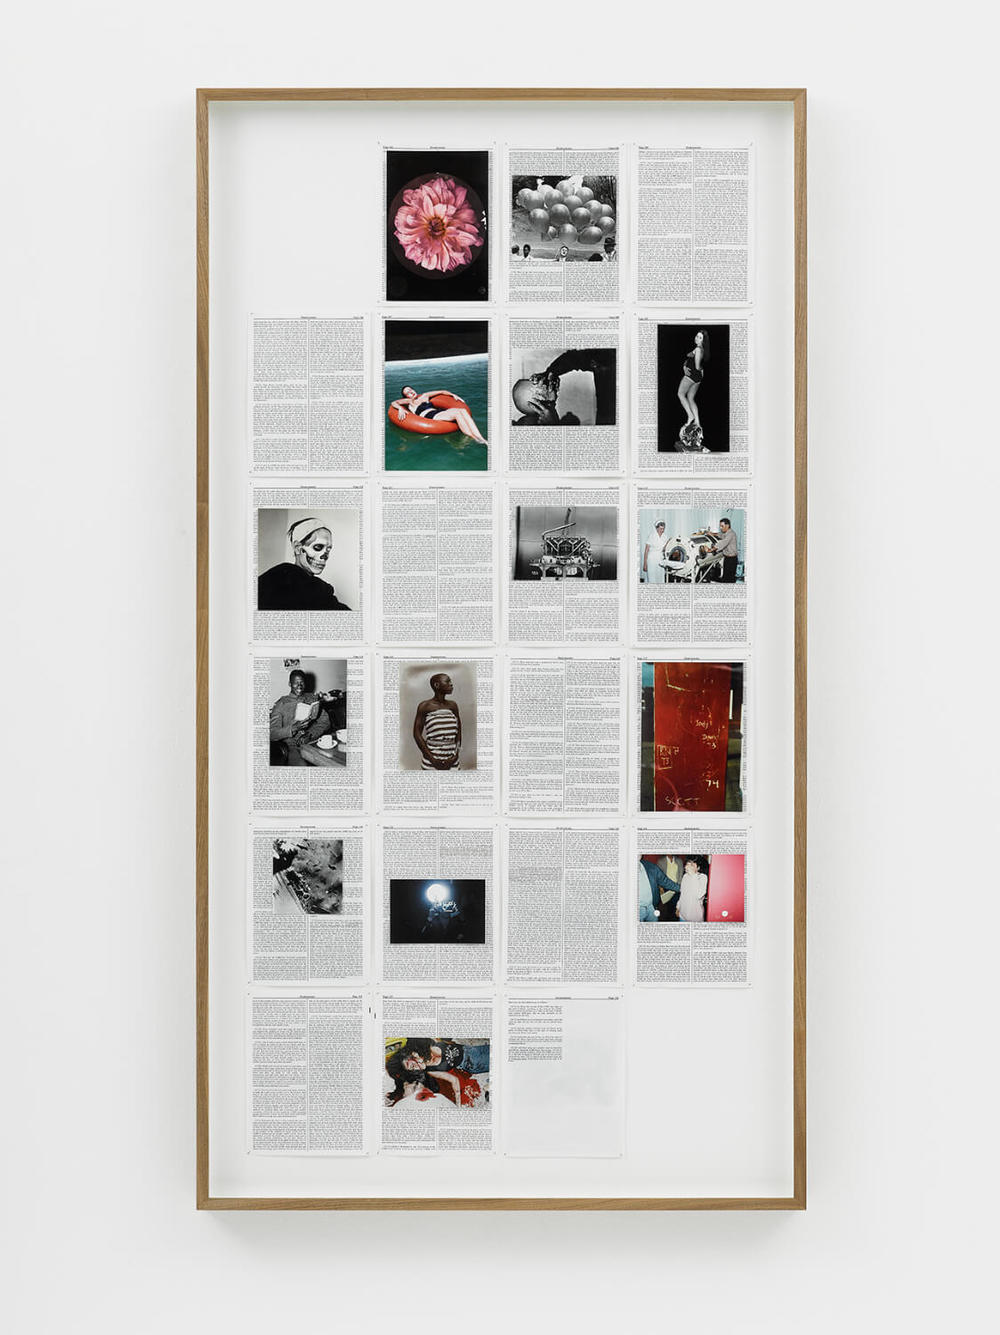 Deuteronomy, Divine Violence, 2013, King James Bible, Hahnemühle print, brass pins, 755mm x 1415mm, Image courtesy of Lisson Gallery, London